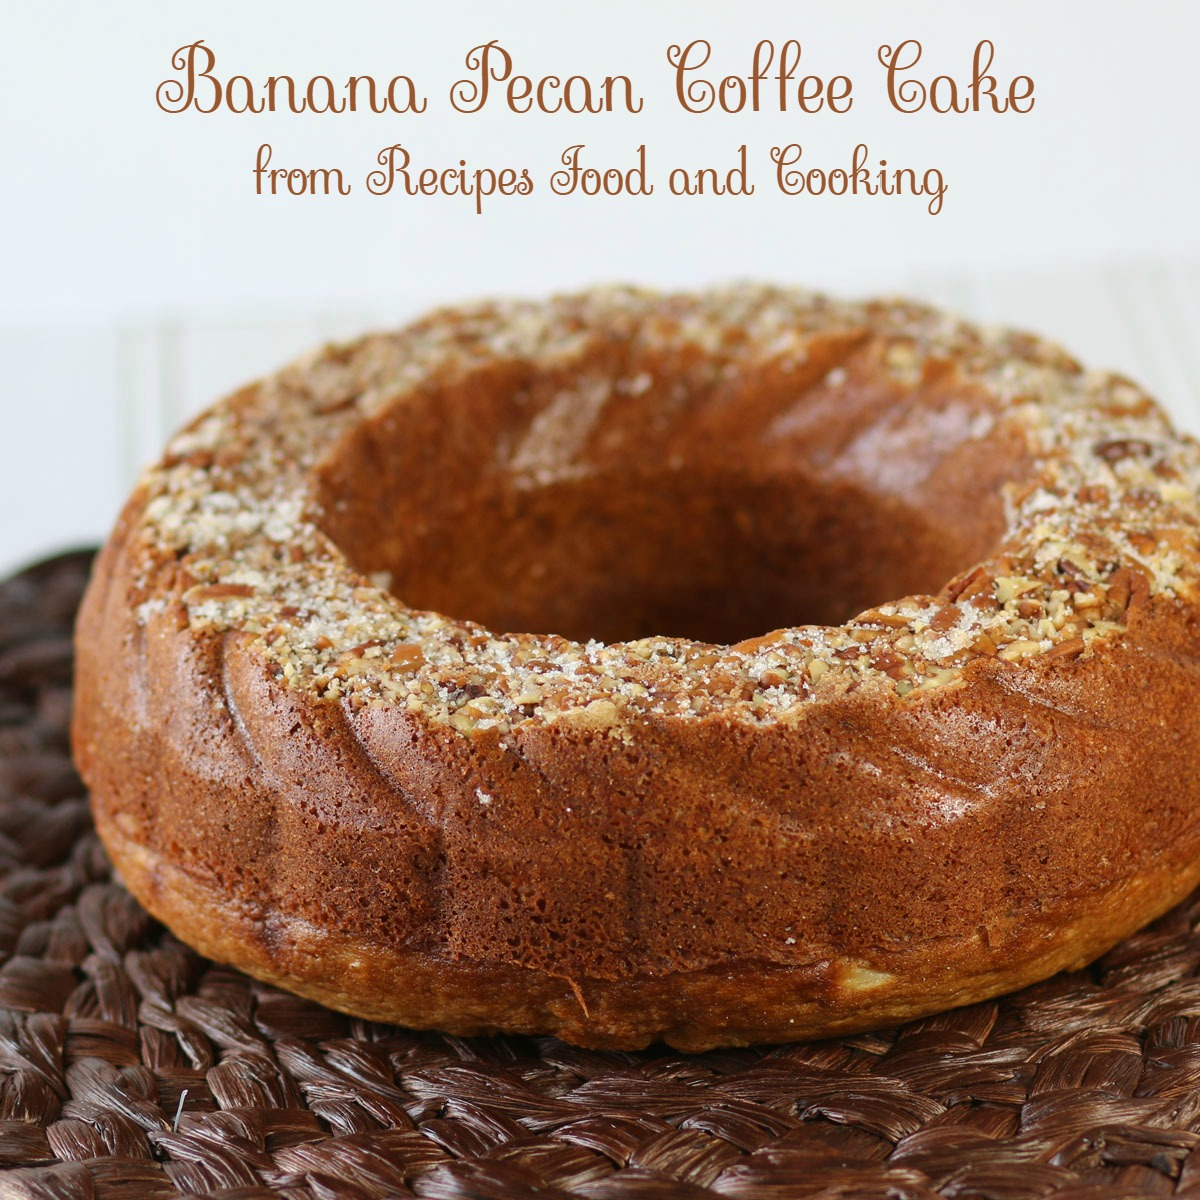 Banana Pecan Coffee Cake Recipes Food And Cooking